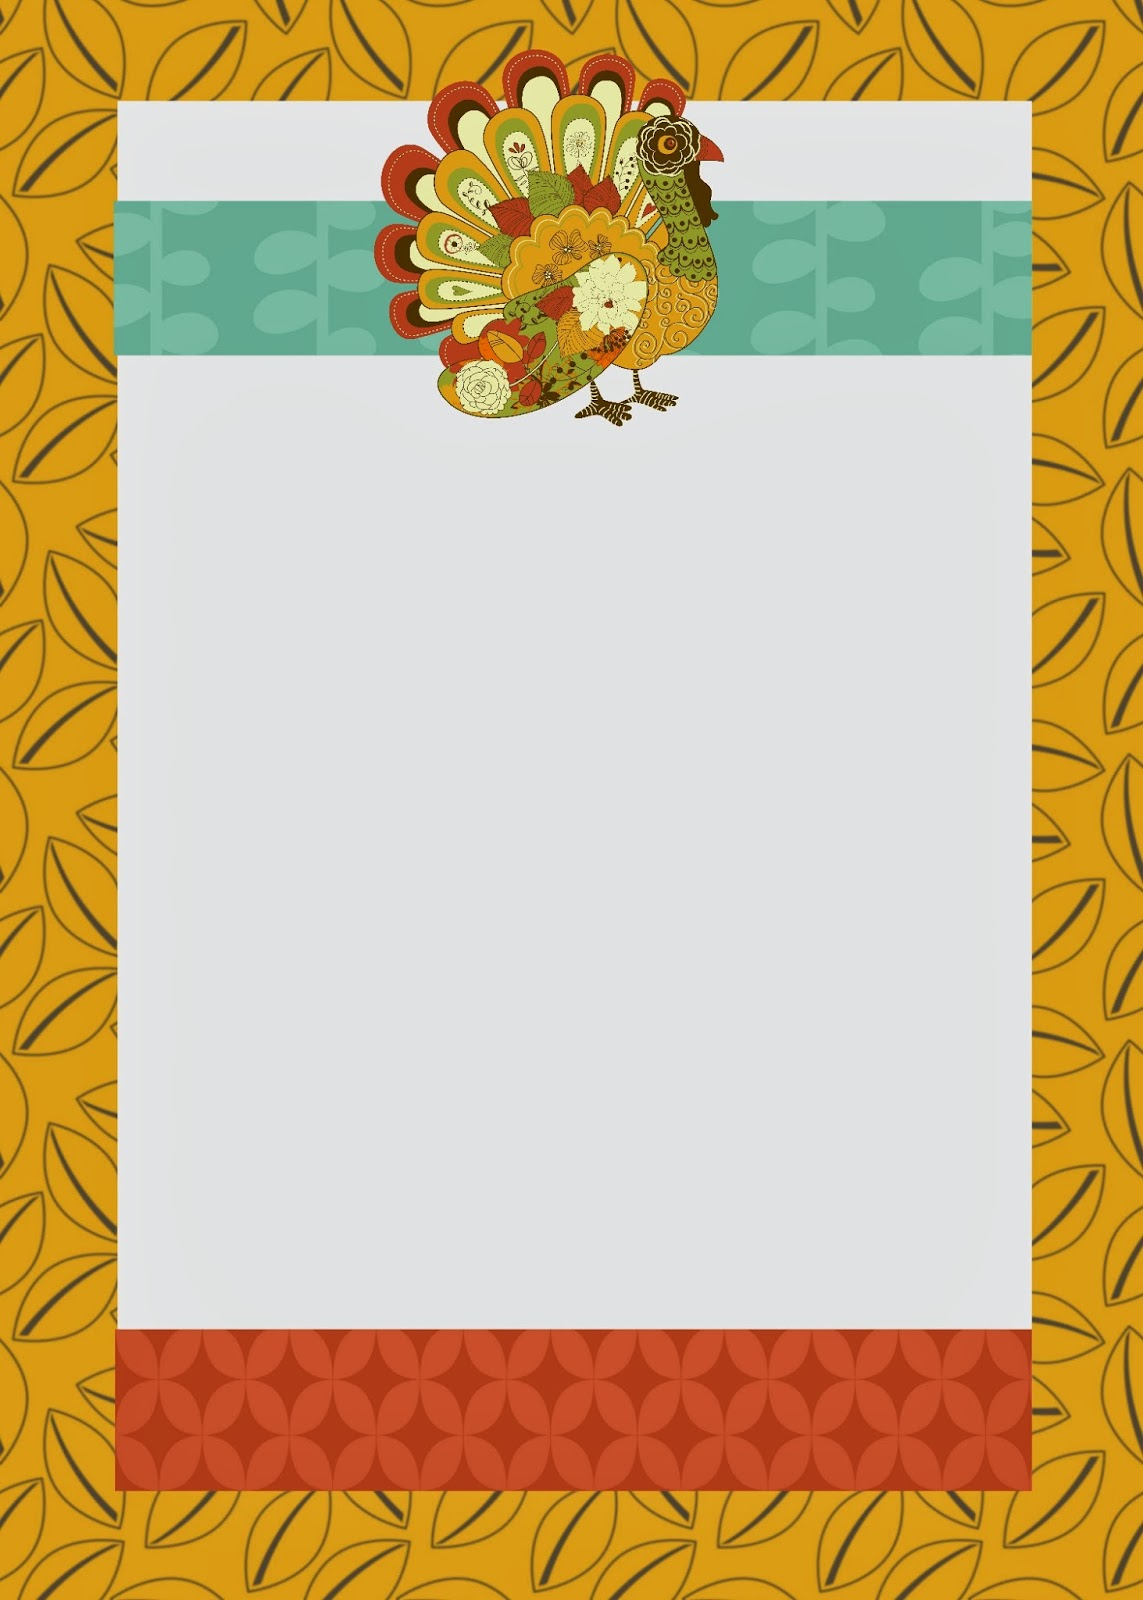 Thanksgiving potluck signup joy studio design gallery for Thanksgiving potluck signup sheet template